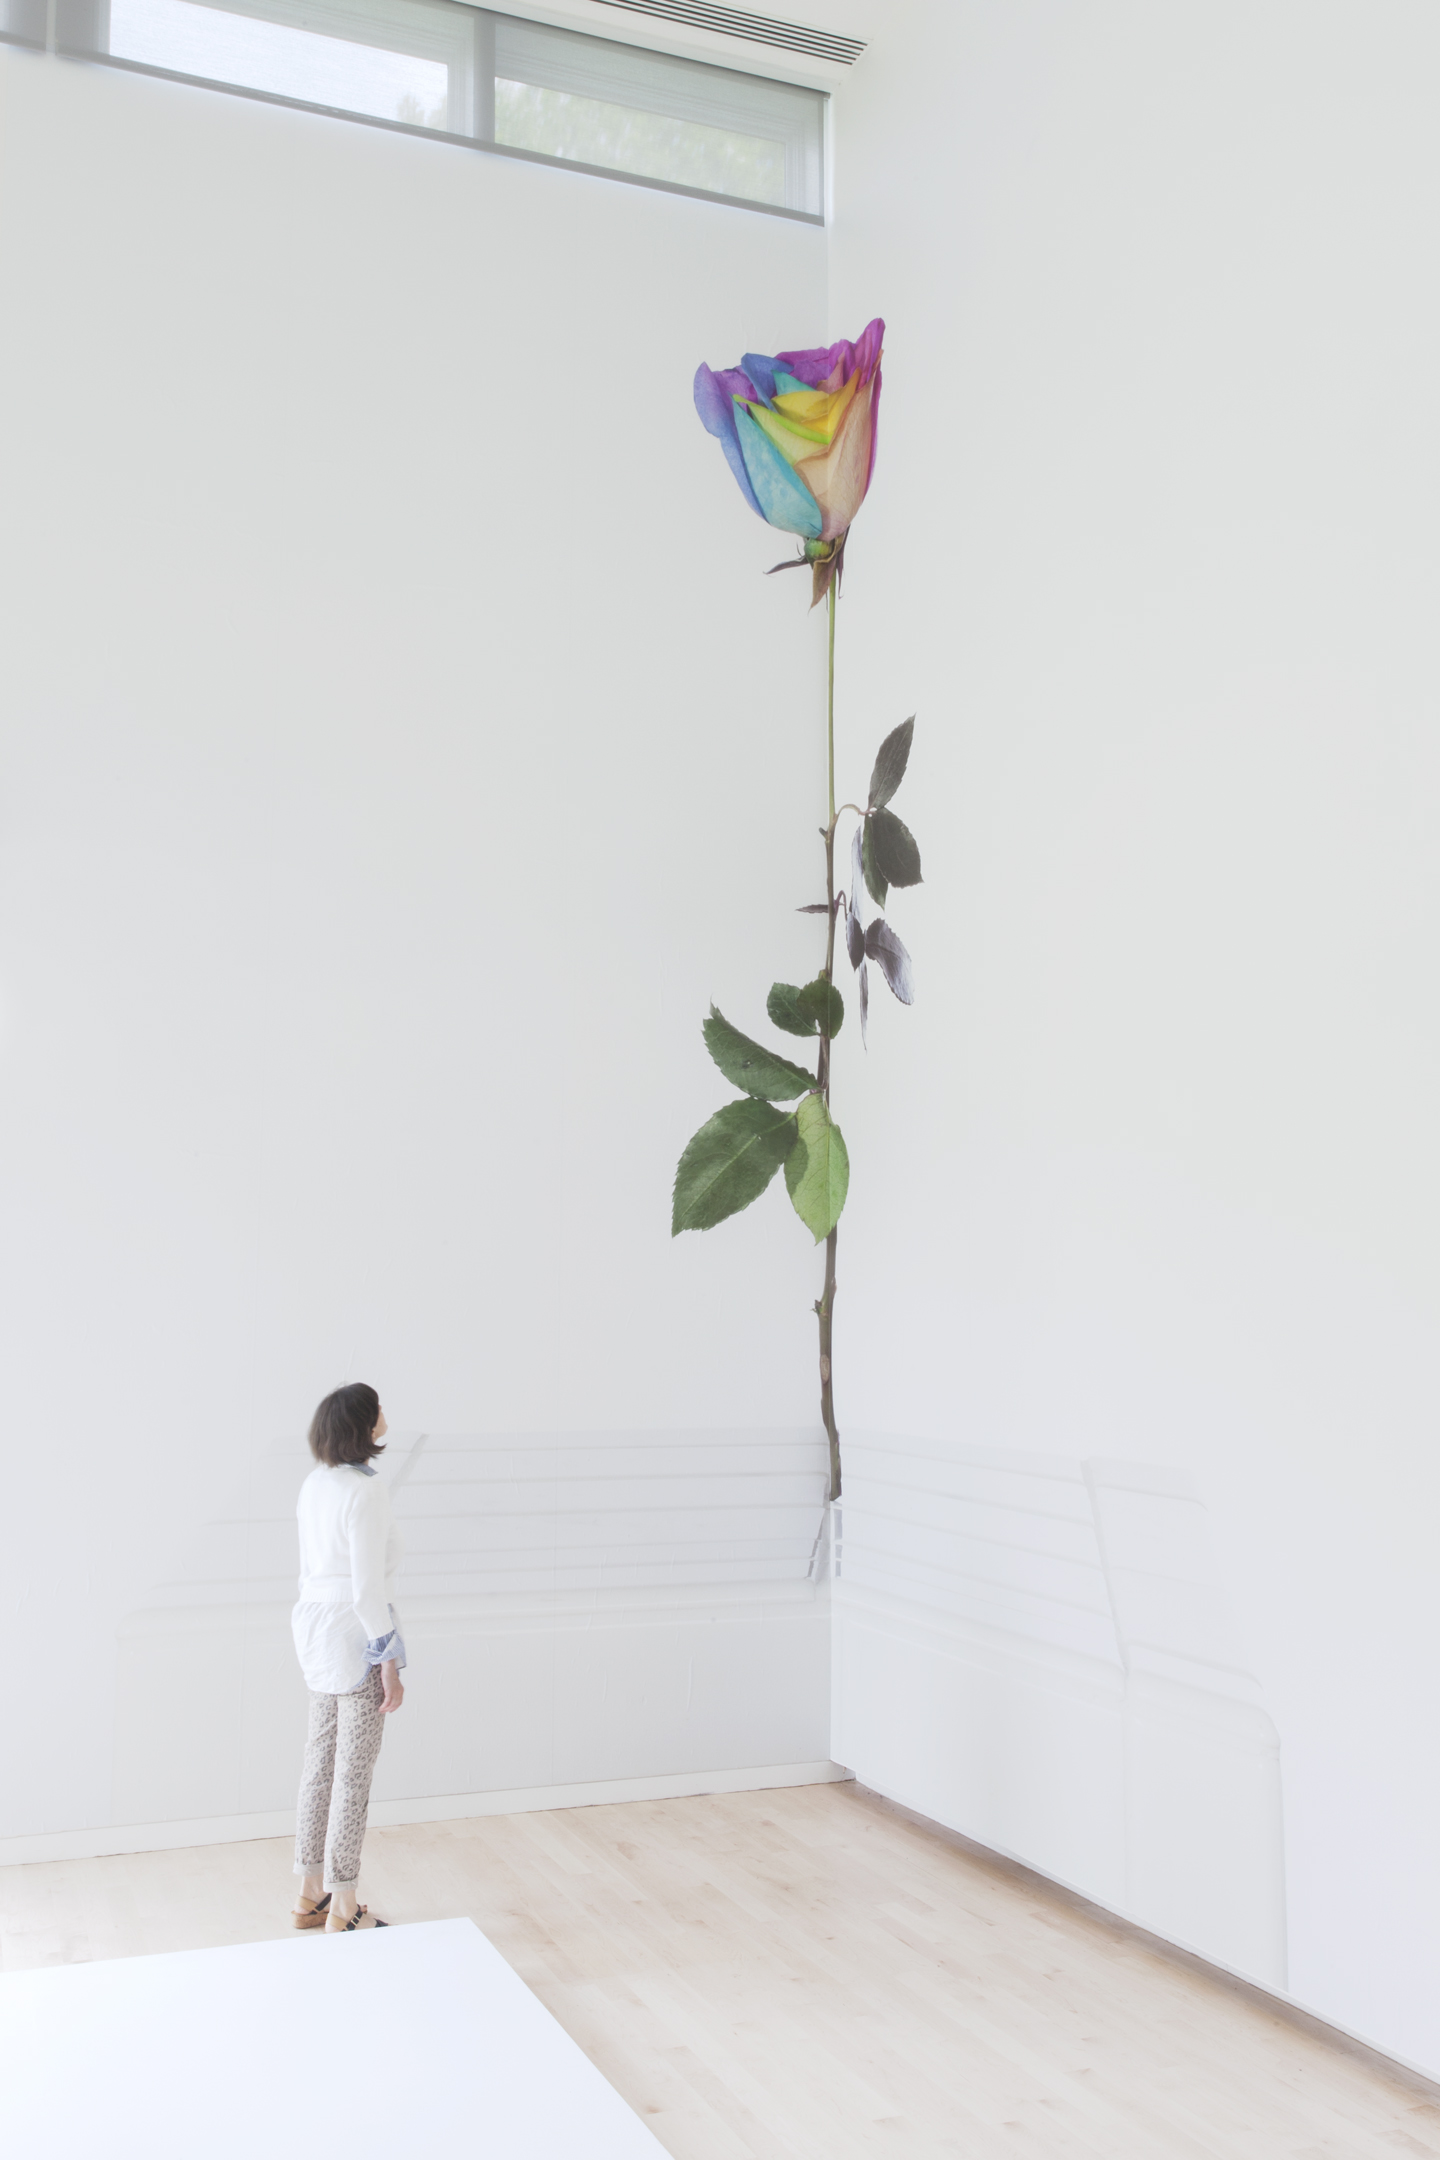 Virginia Poundstone: Flower Mutations installation view at The Aldrich Contemporary Art Museum, Ridgefield, 2015. Courtesy: The Aldrich Contemporary Art Museum, Ridgefield. Photo: Jean Vong